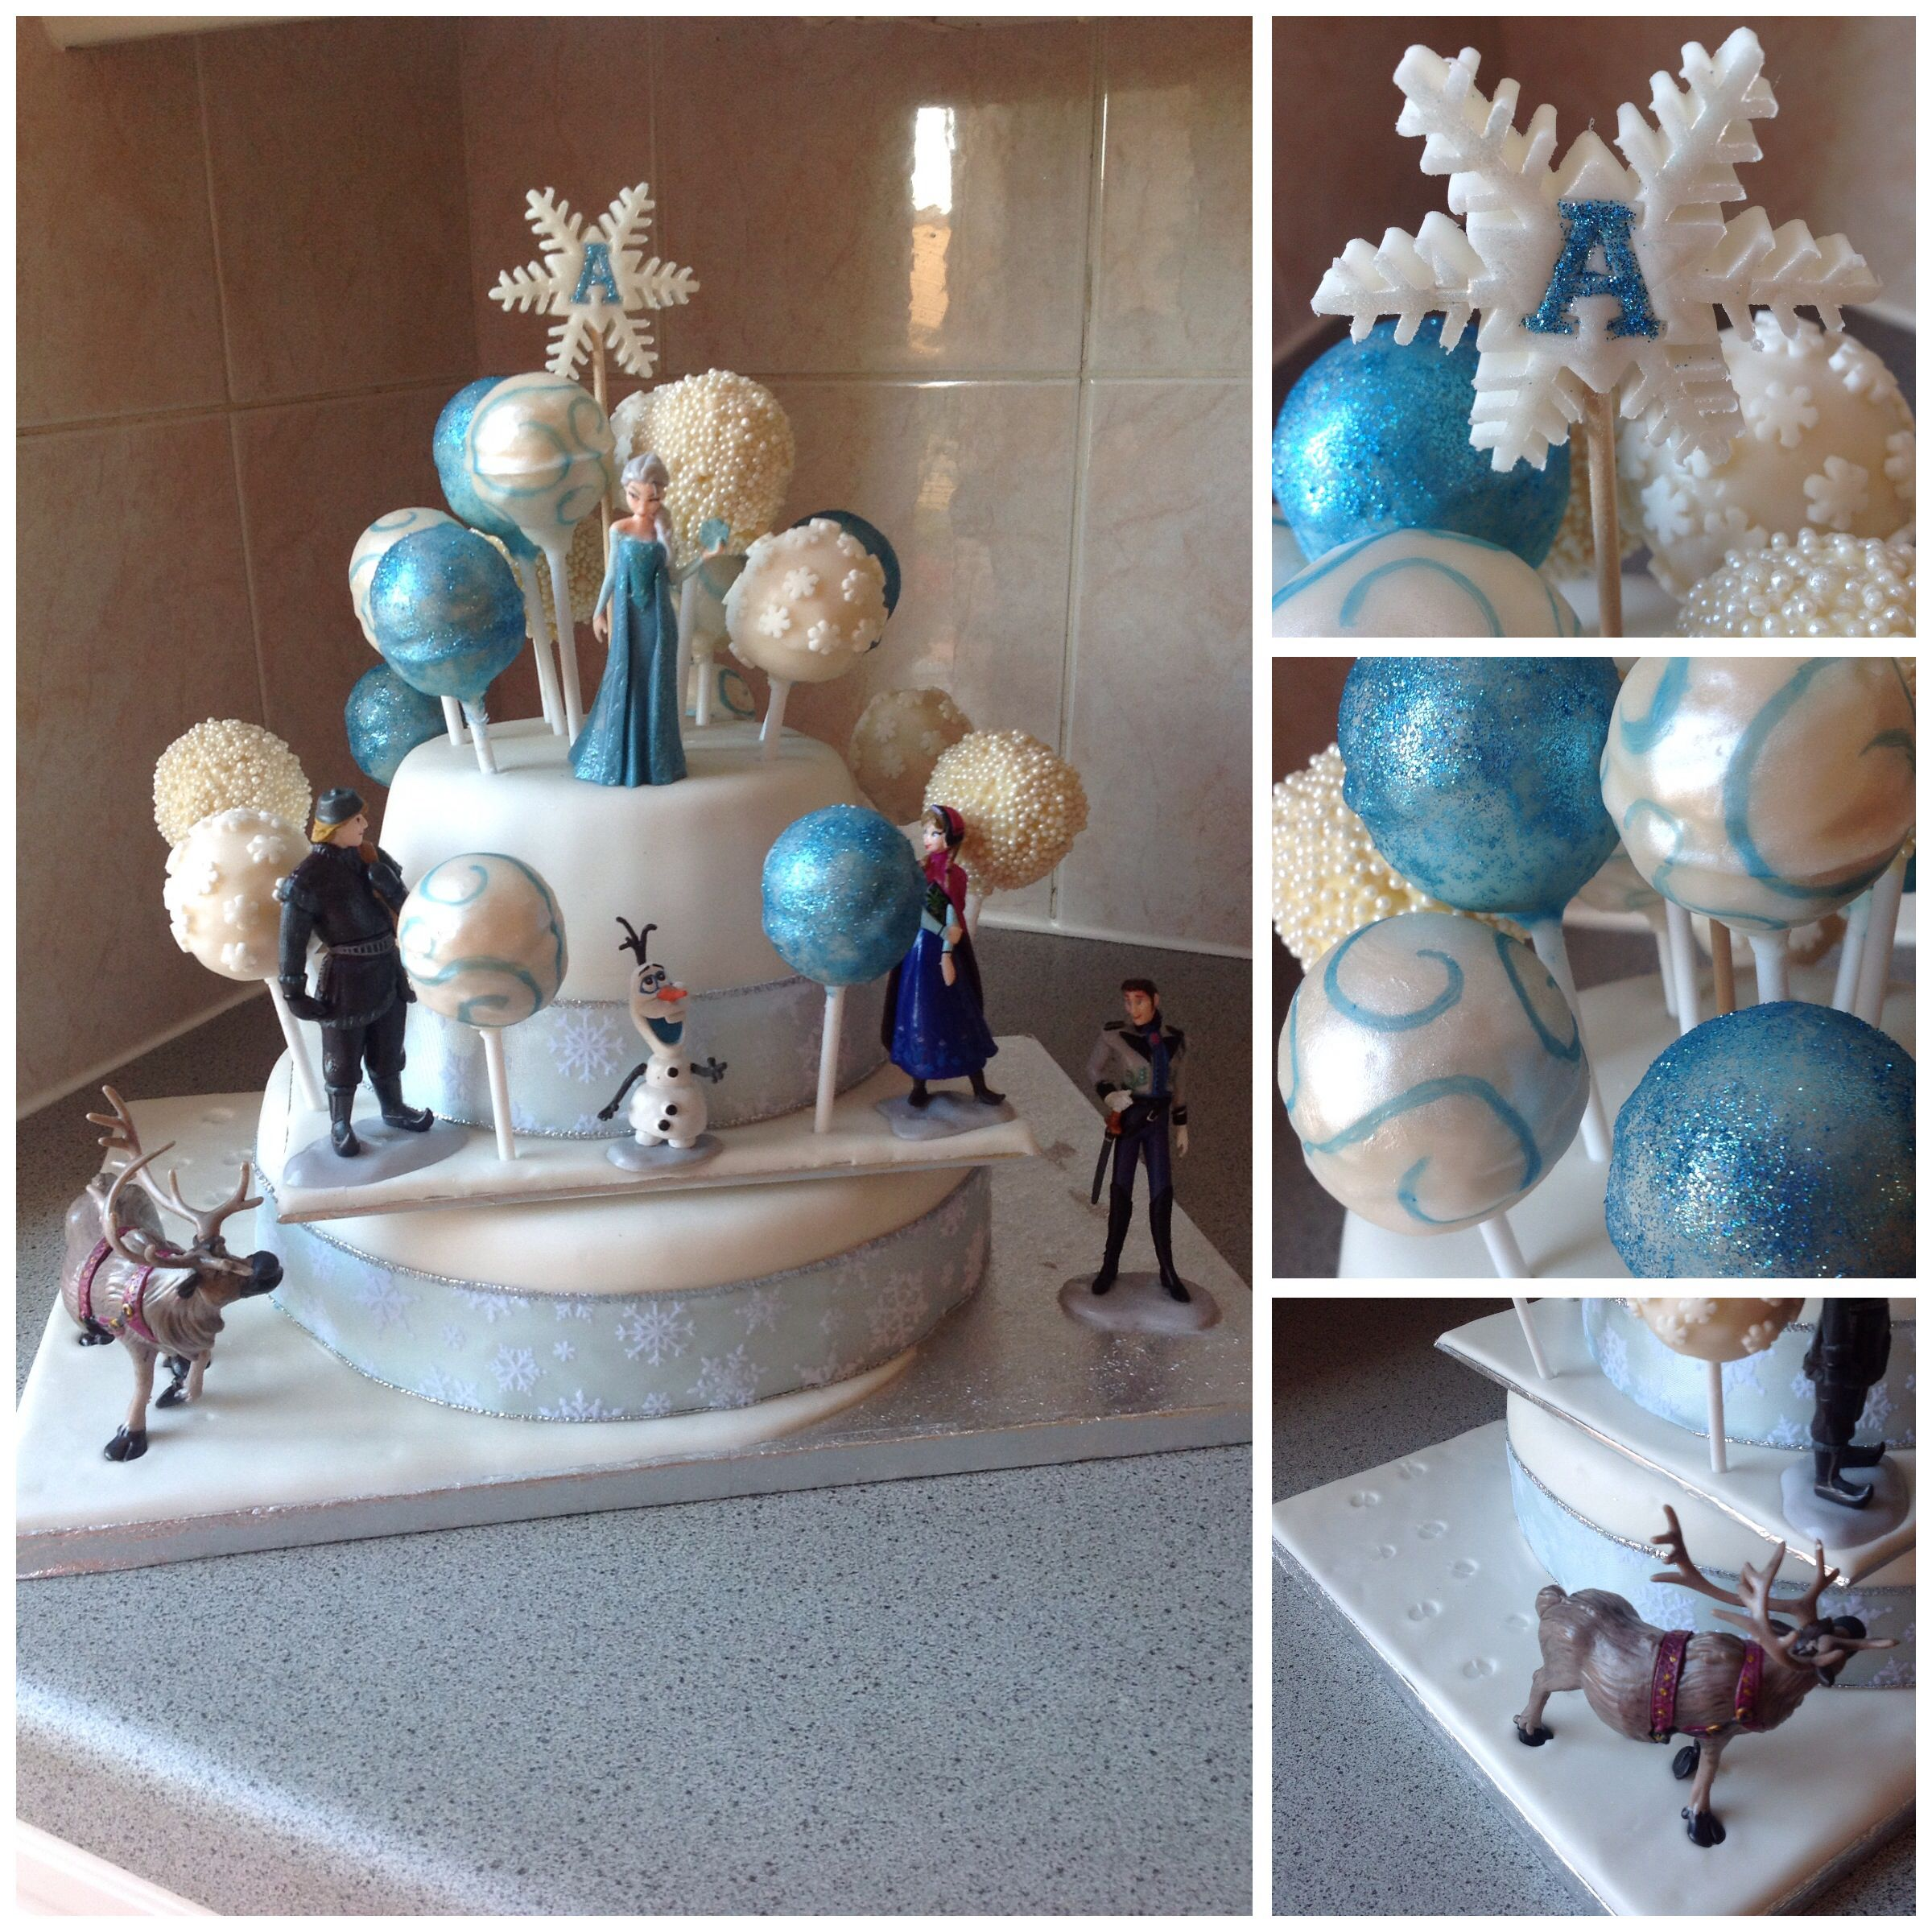 Frozen Cake-Pop Cake (With plastic figurines)